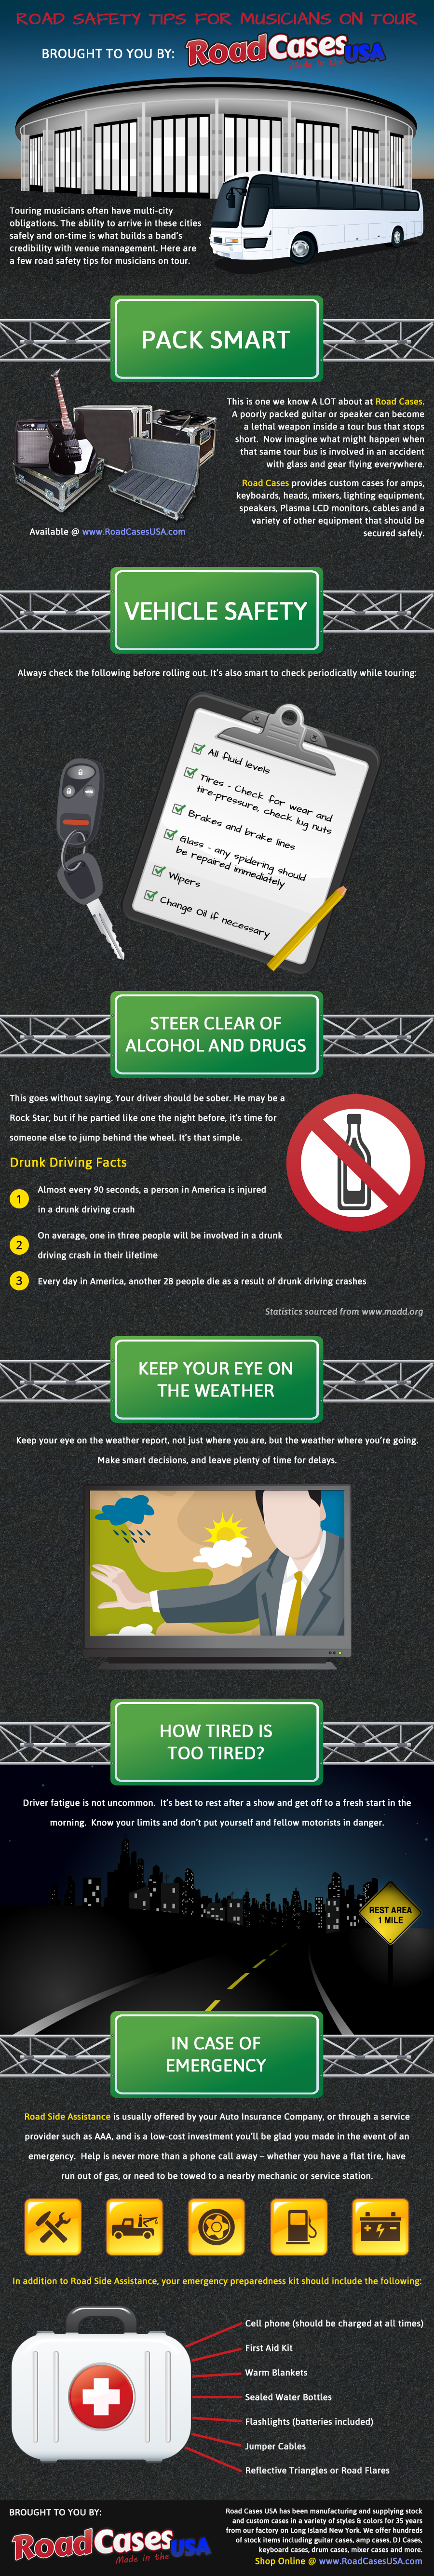 Road Safety Tips Infographic